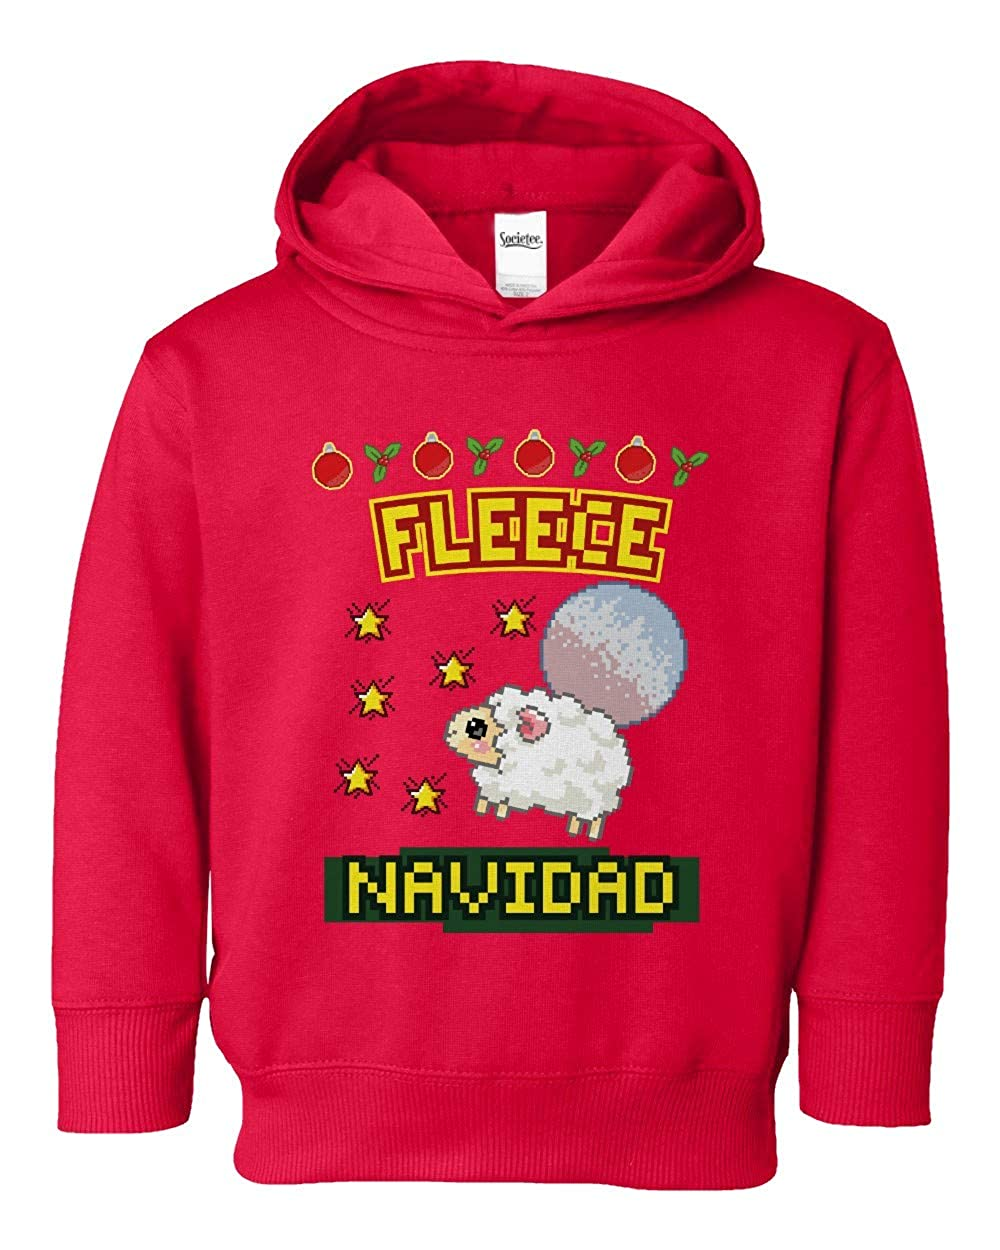 Societee Fleece Navidad Cute Adorable Girls Boys Toddler Hooded Sweatshirt